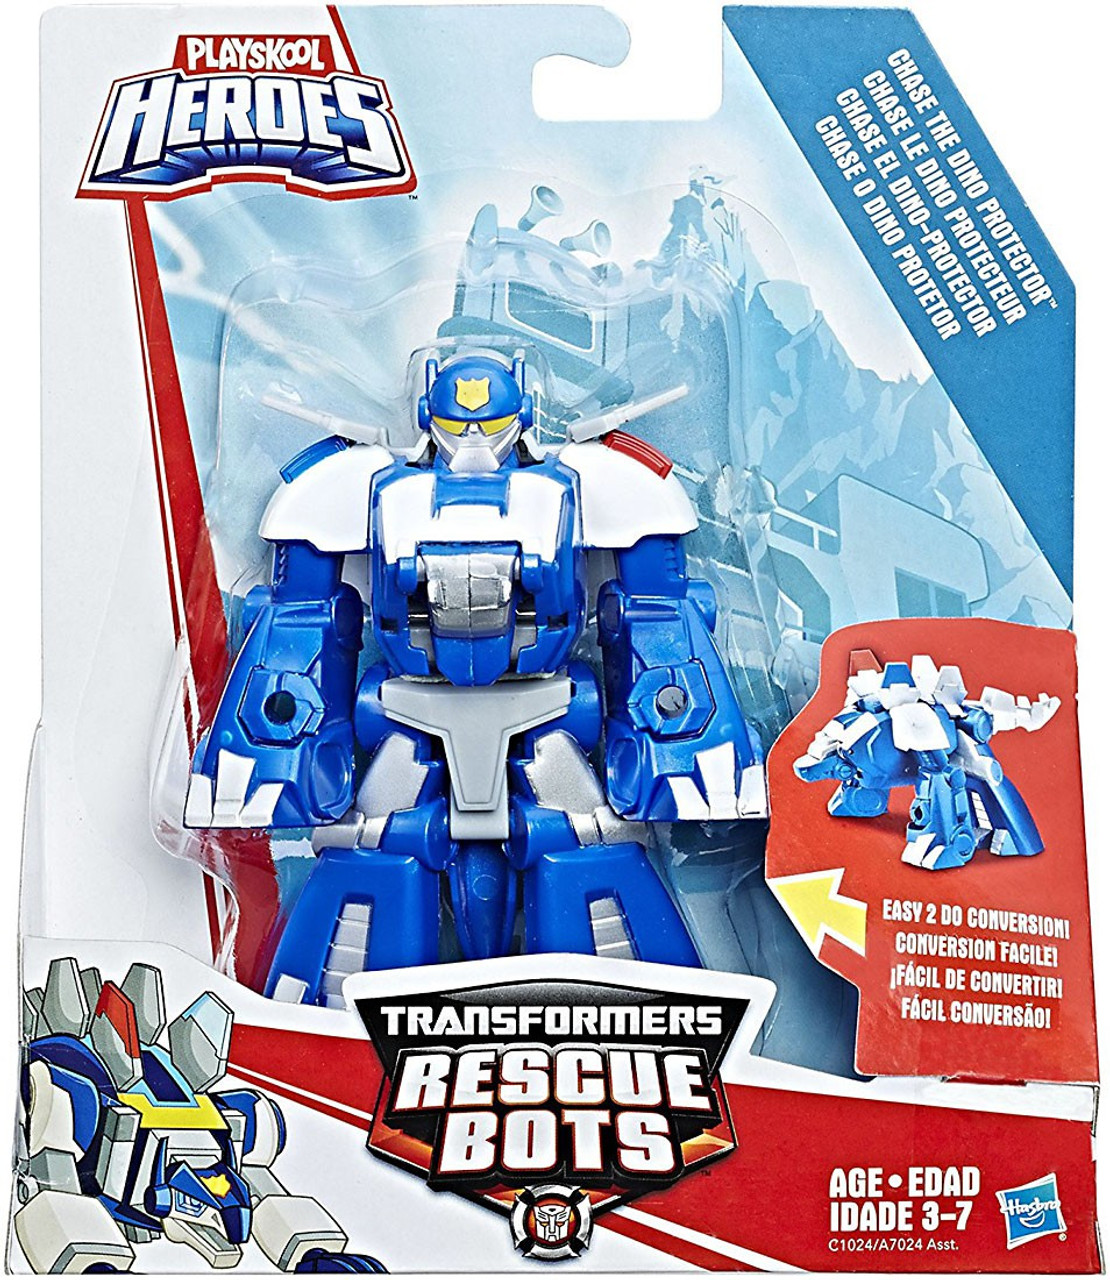 transformers rescue bots playskool heroes chase the dino protector